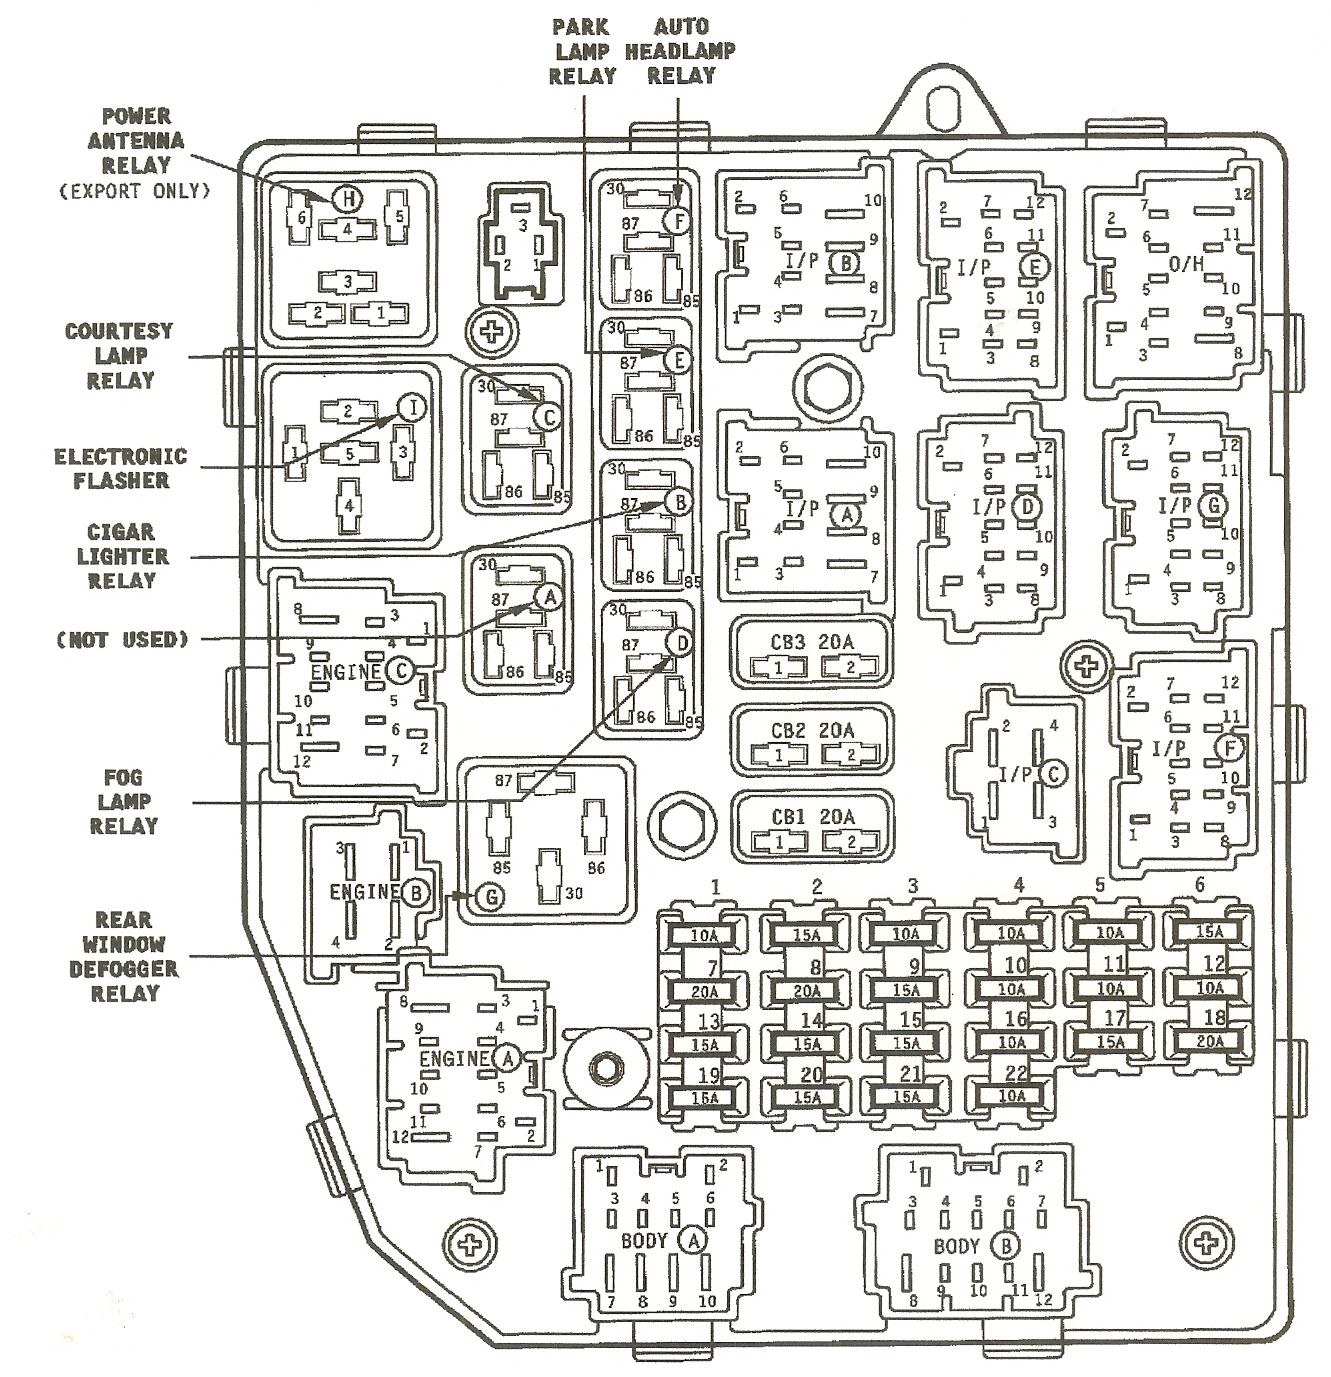 98 Jeep Grand Cherokee Laredo Fuse Box Layout Bookmark About 1998 Wiring Diagrams Pdf Diagram Data Rh 8 12 4 Reisen Fuer Meister